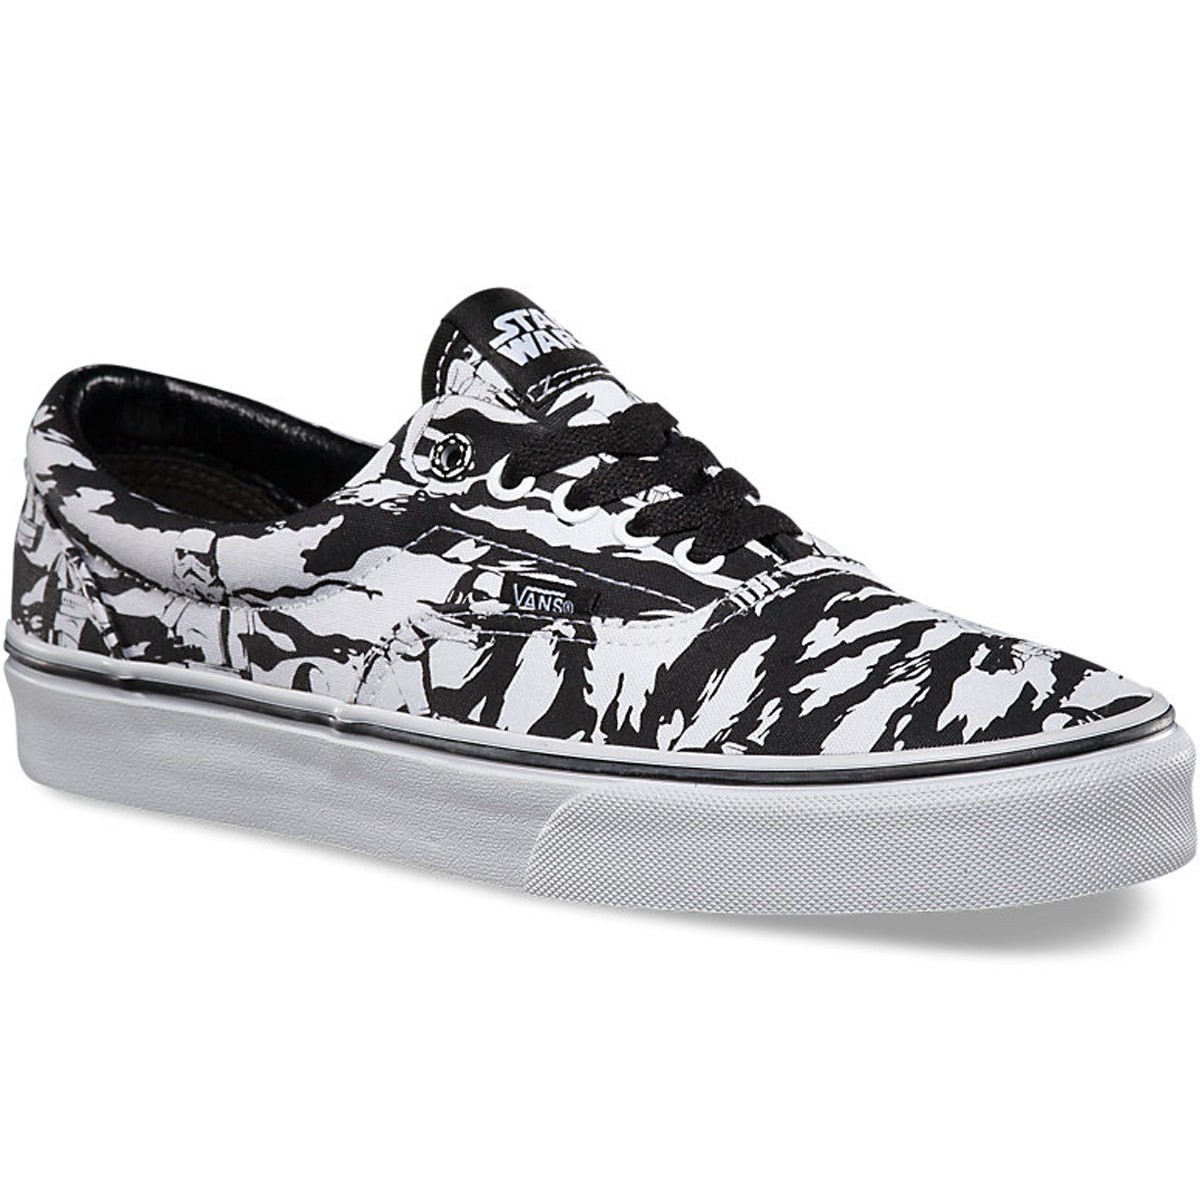 1386784ffb Vans Star Wars Era Shoes - Dark Side Storm Camo - 13.0